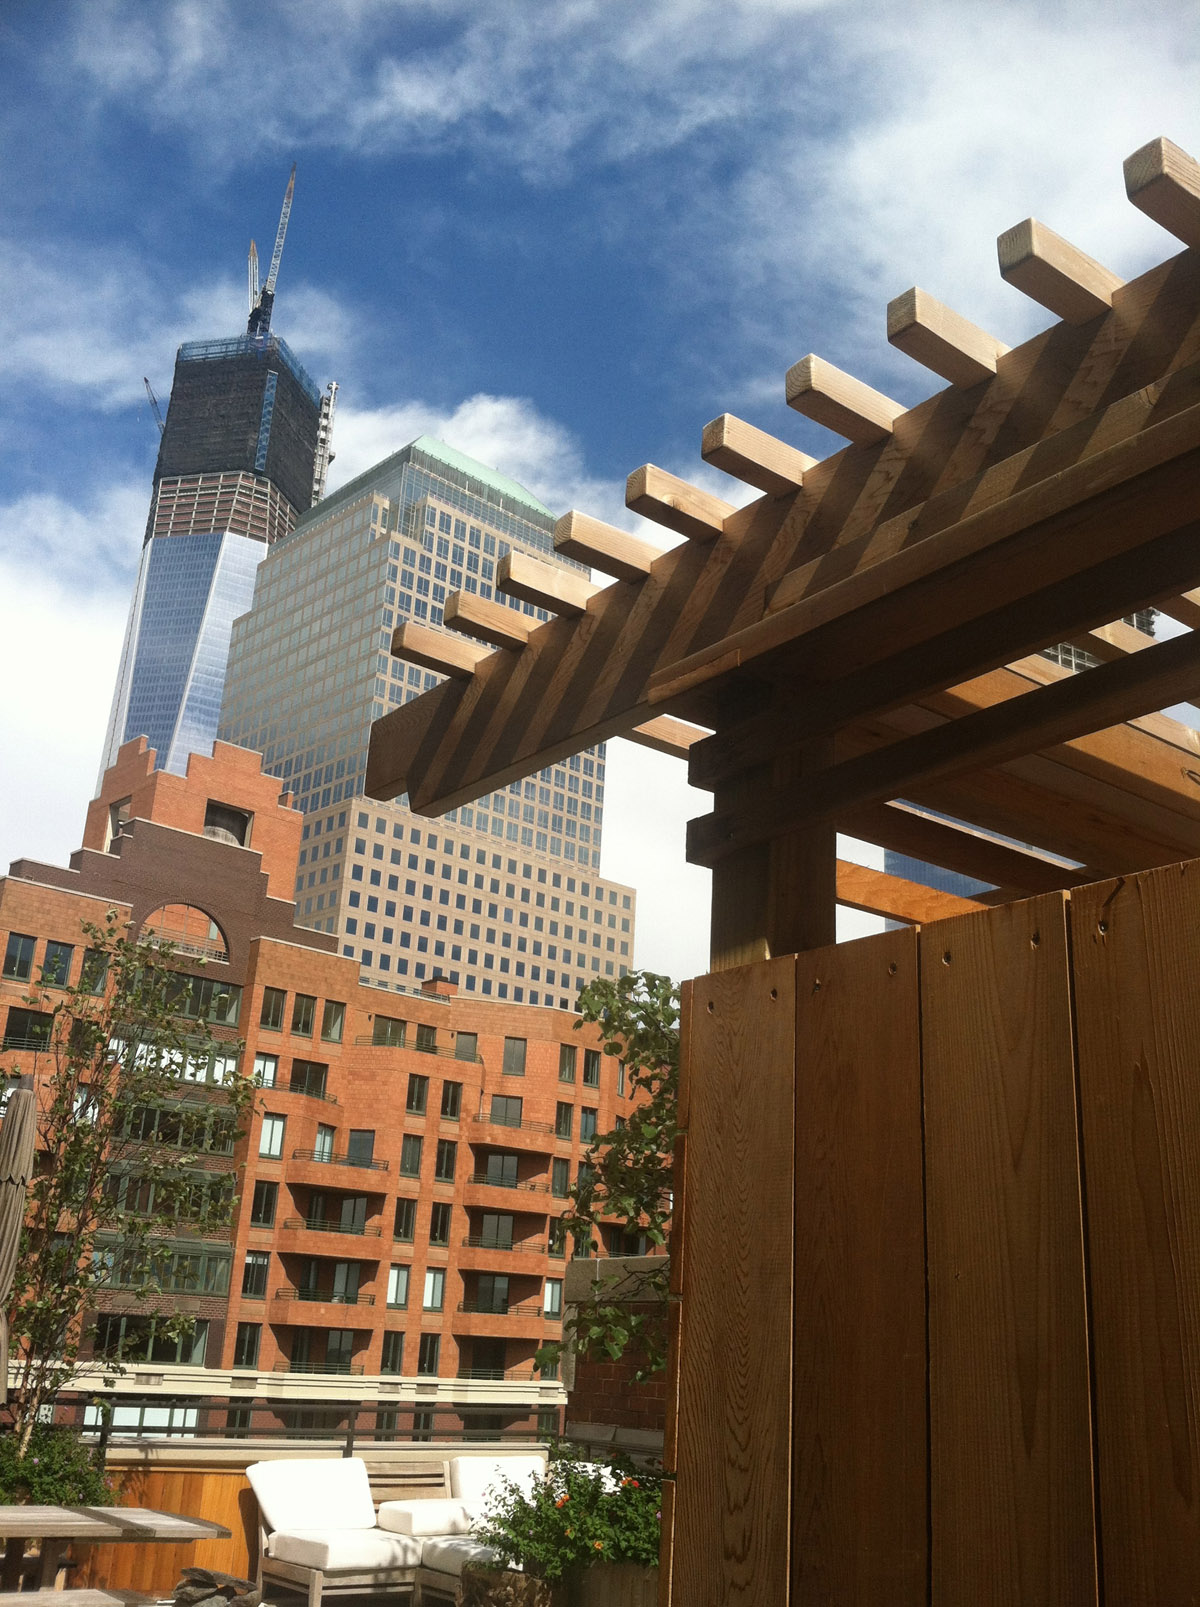 A Custom Built Arbor On A Rooftop Terrace In NYC With The Freedom Tower In  The